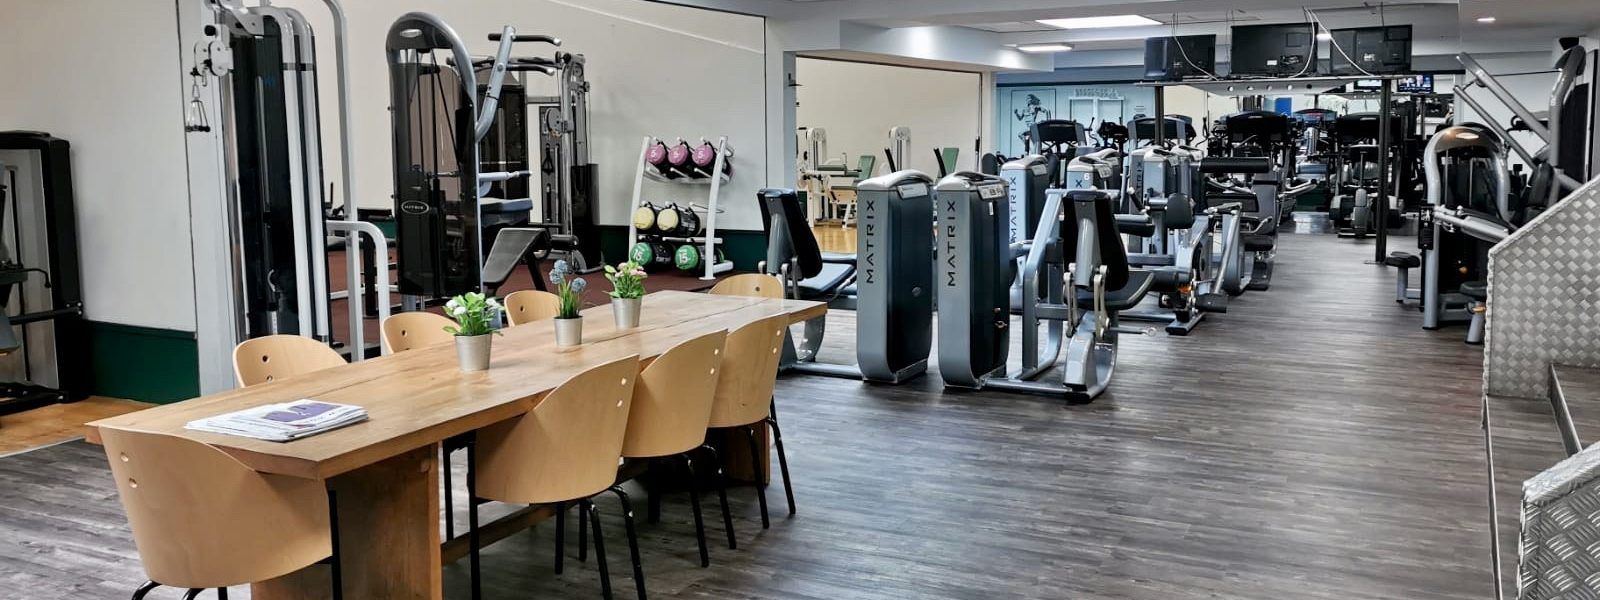 Fitness Studio Neuss Training Fitnessstudio